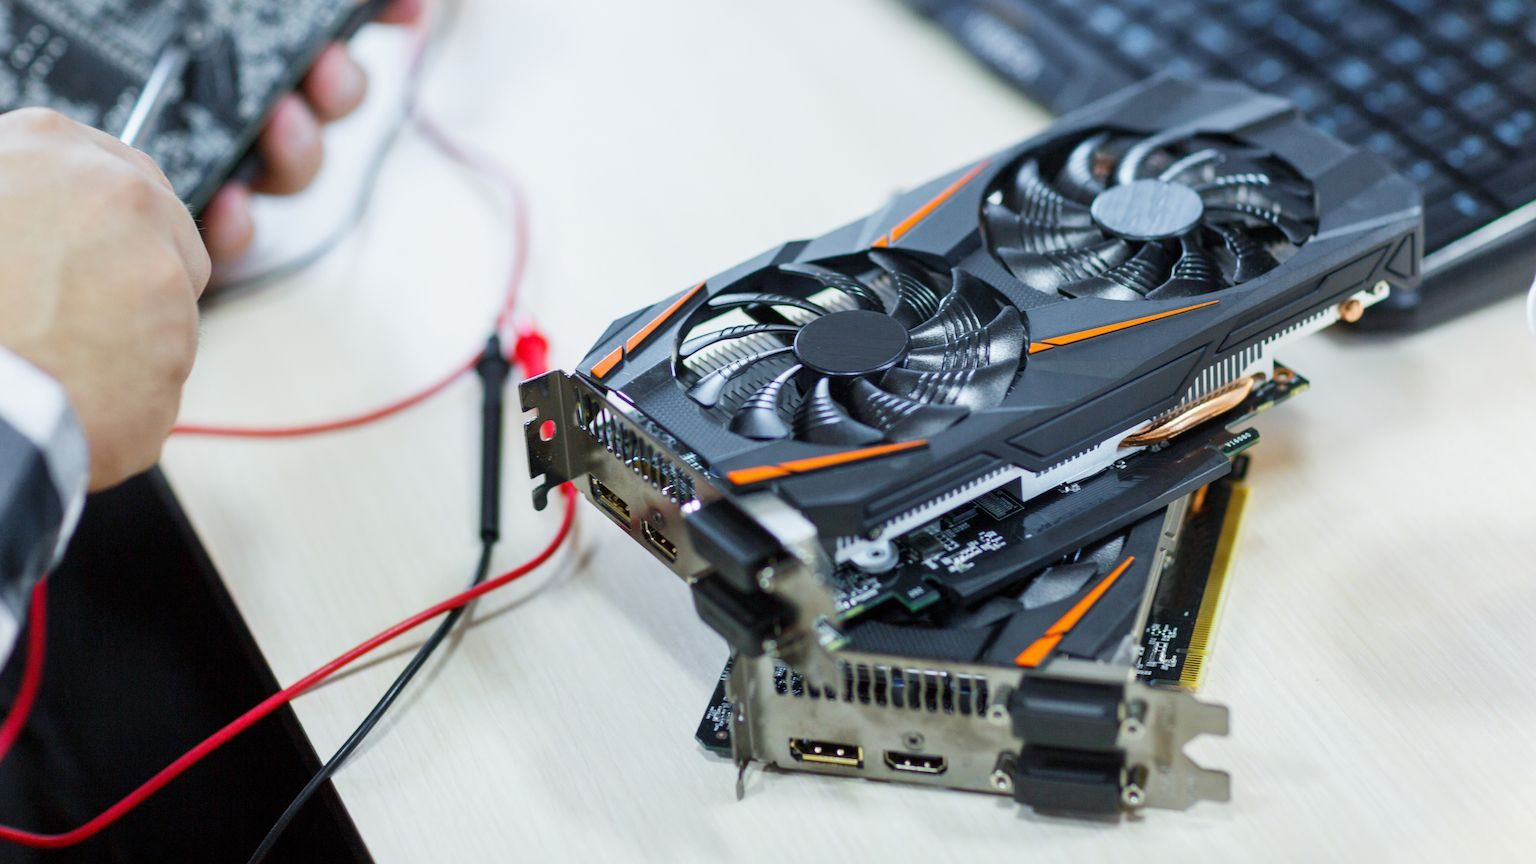 Close up of two graphics cards stacked on top of each other